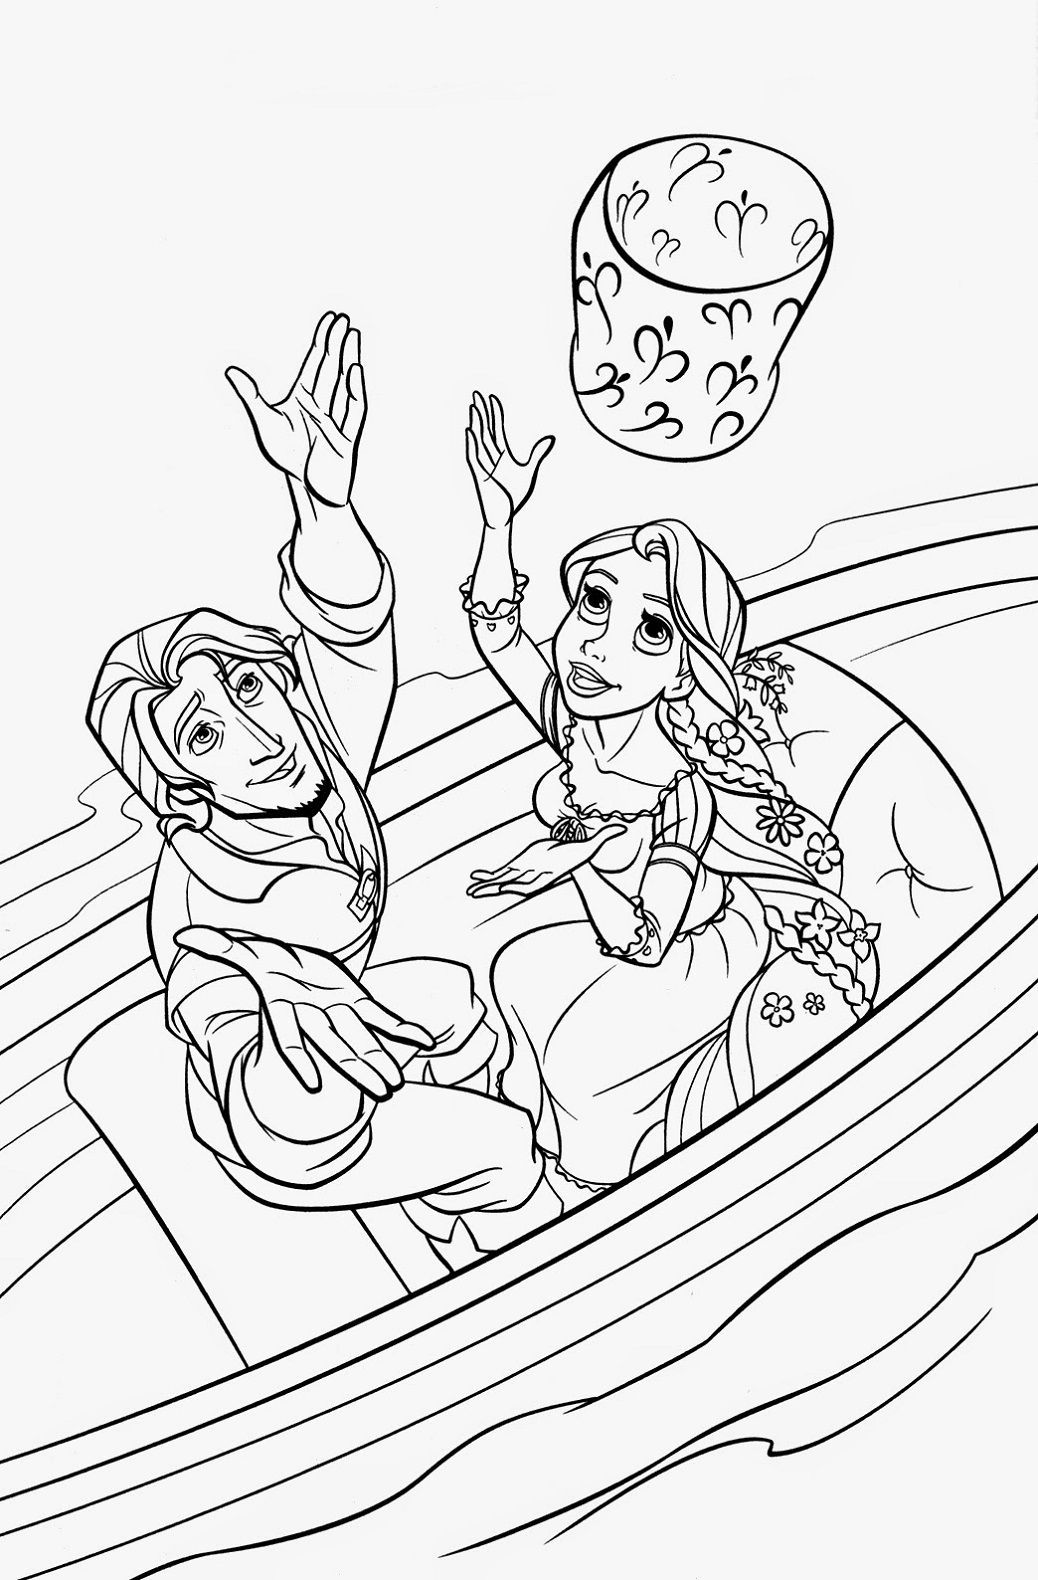 Tangled Coloring Pages Printables Tangled Coloring Pages Princess Coloring Pages Rapunzel Coloring Pages